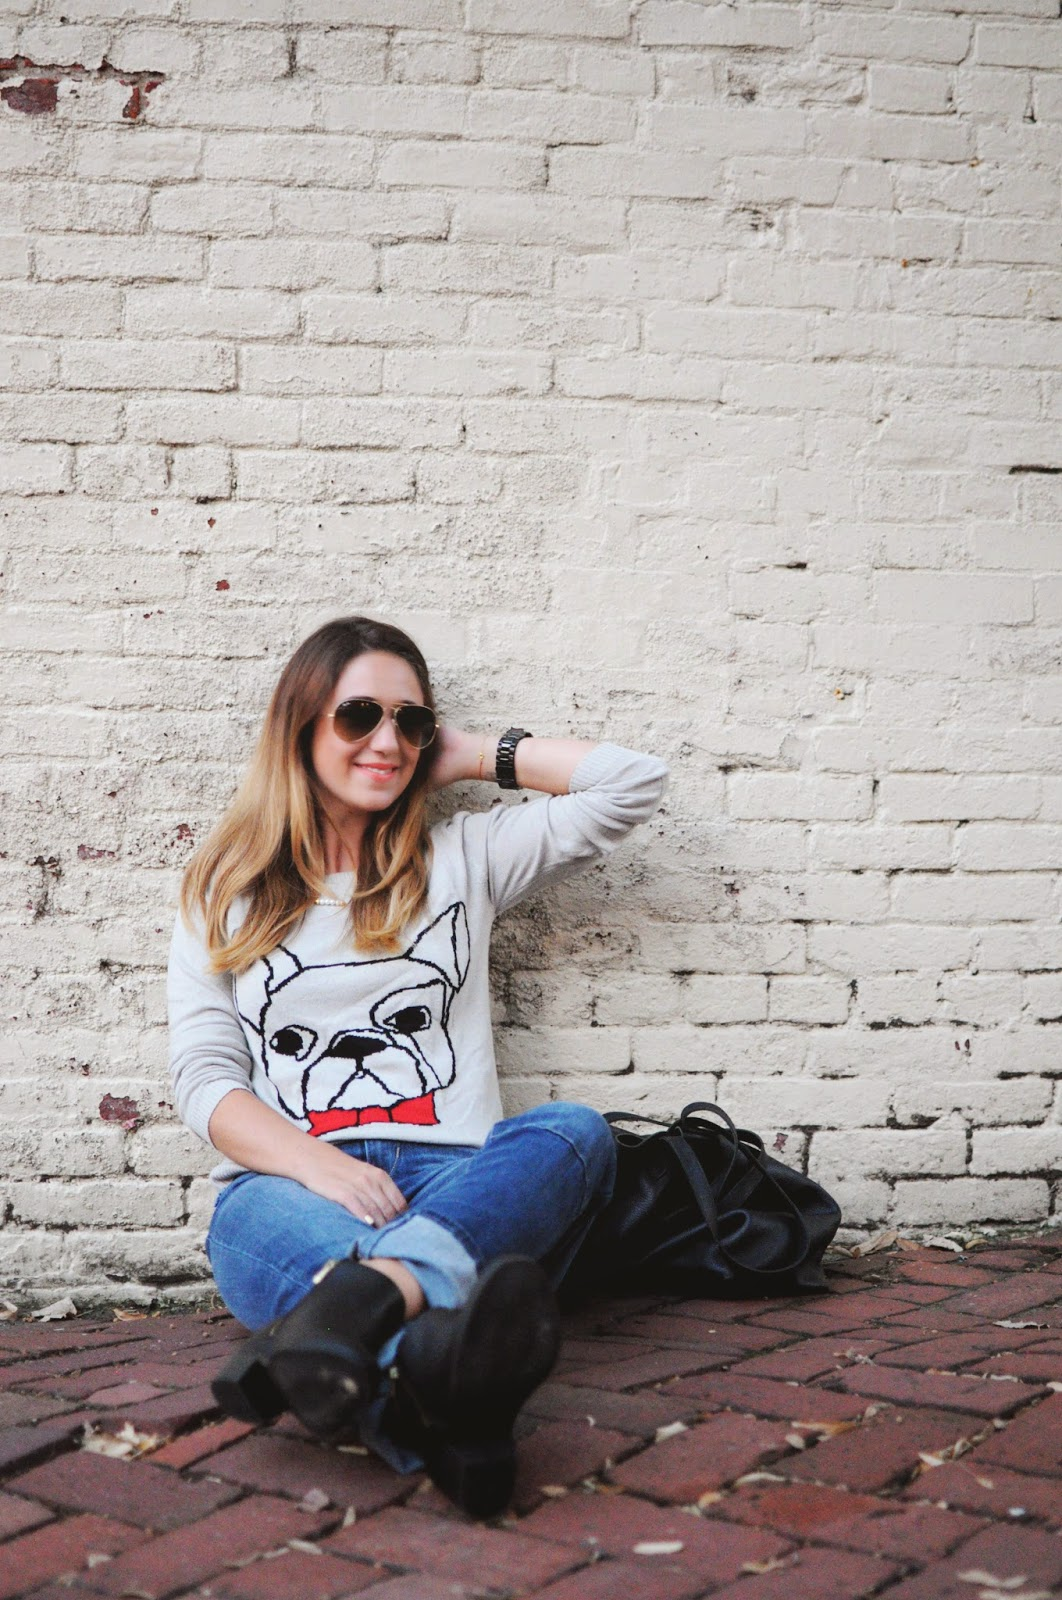 back to school fashion, sears fashion, levis jeans, black booties, graphic sweater, pug sweater